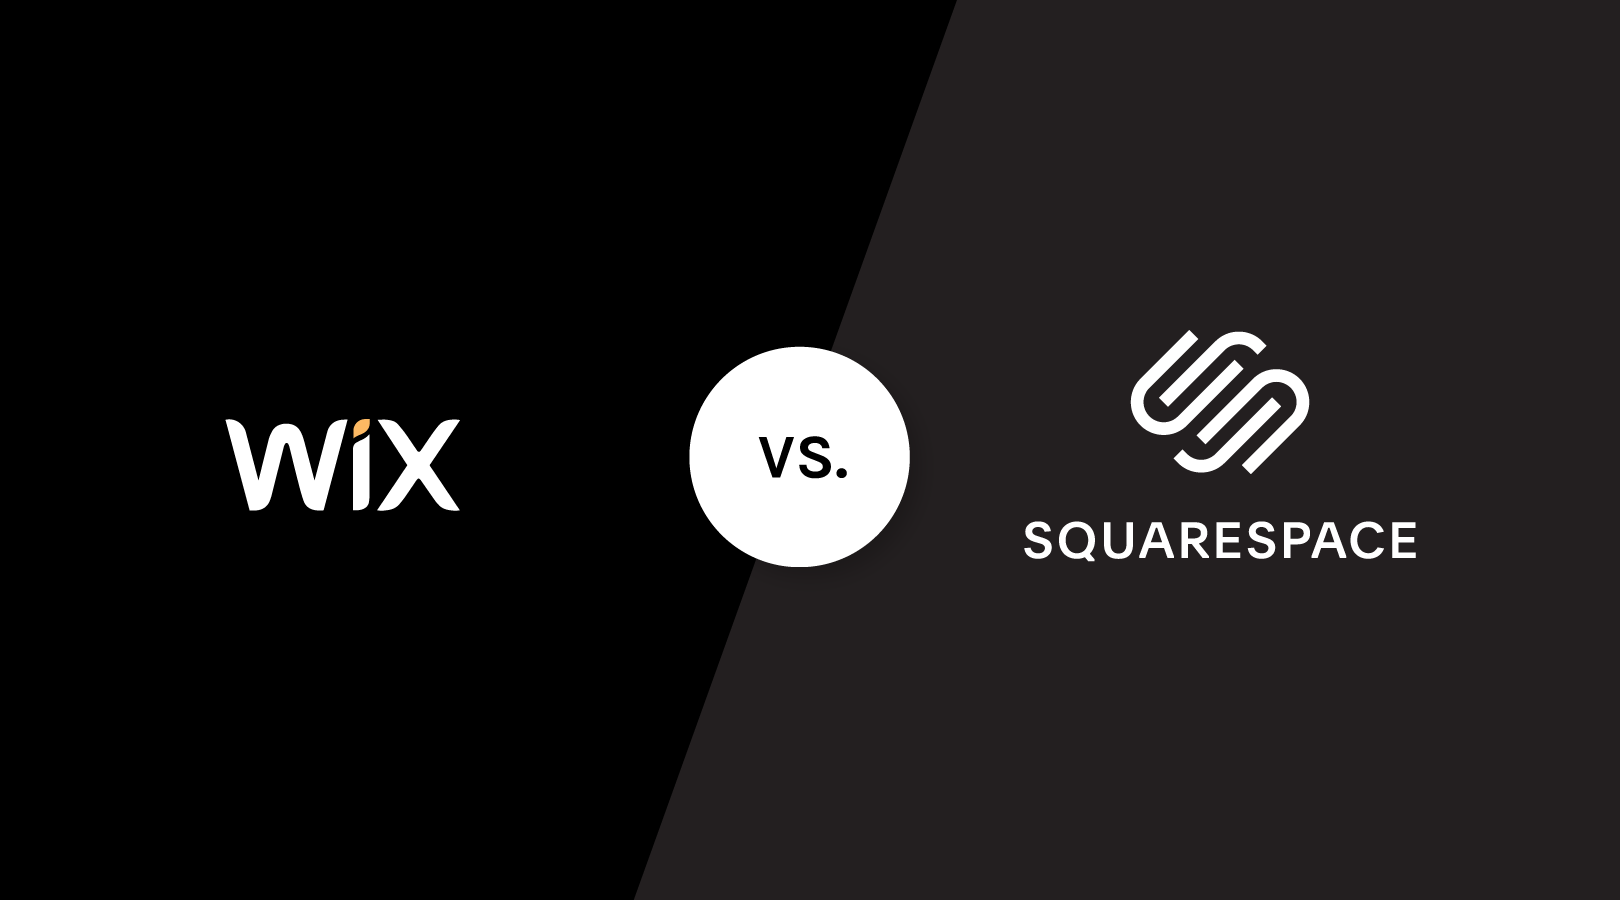 Wix vs. Squarespace: Which is Best for Your eCommerce Business